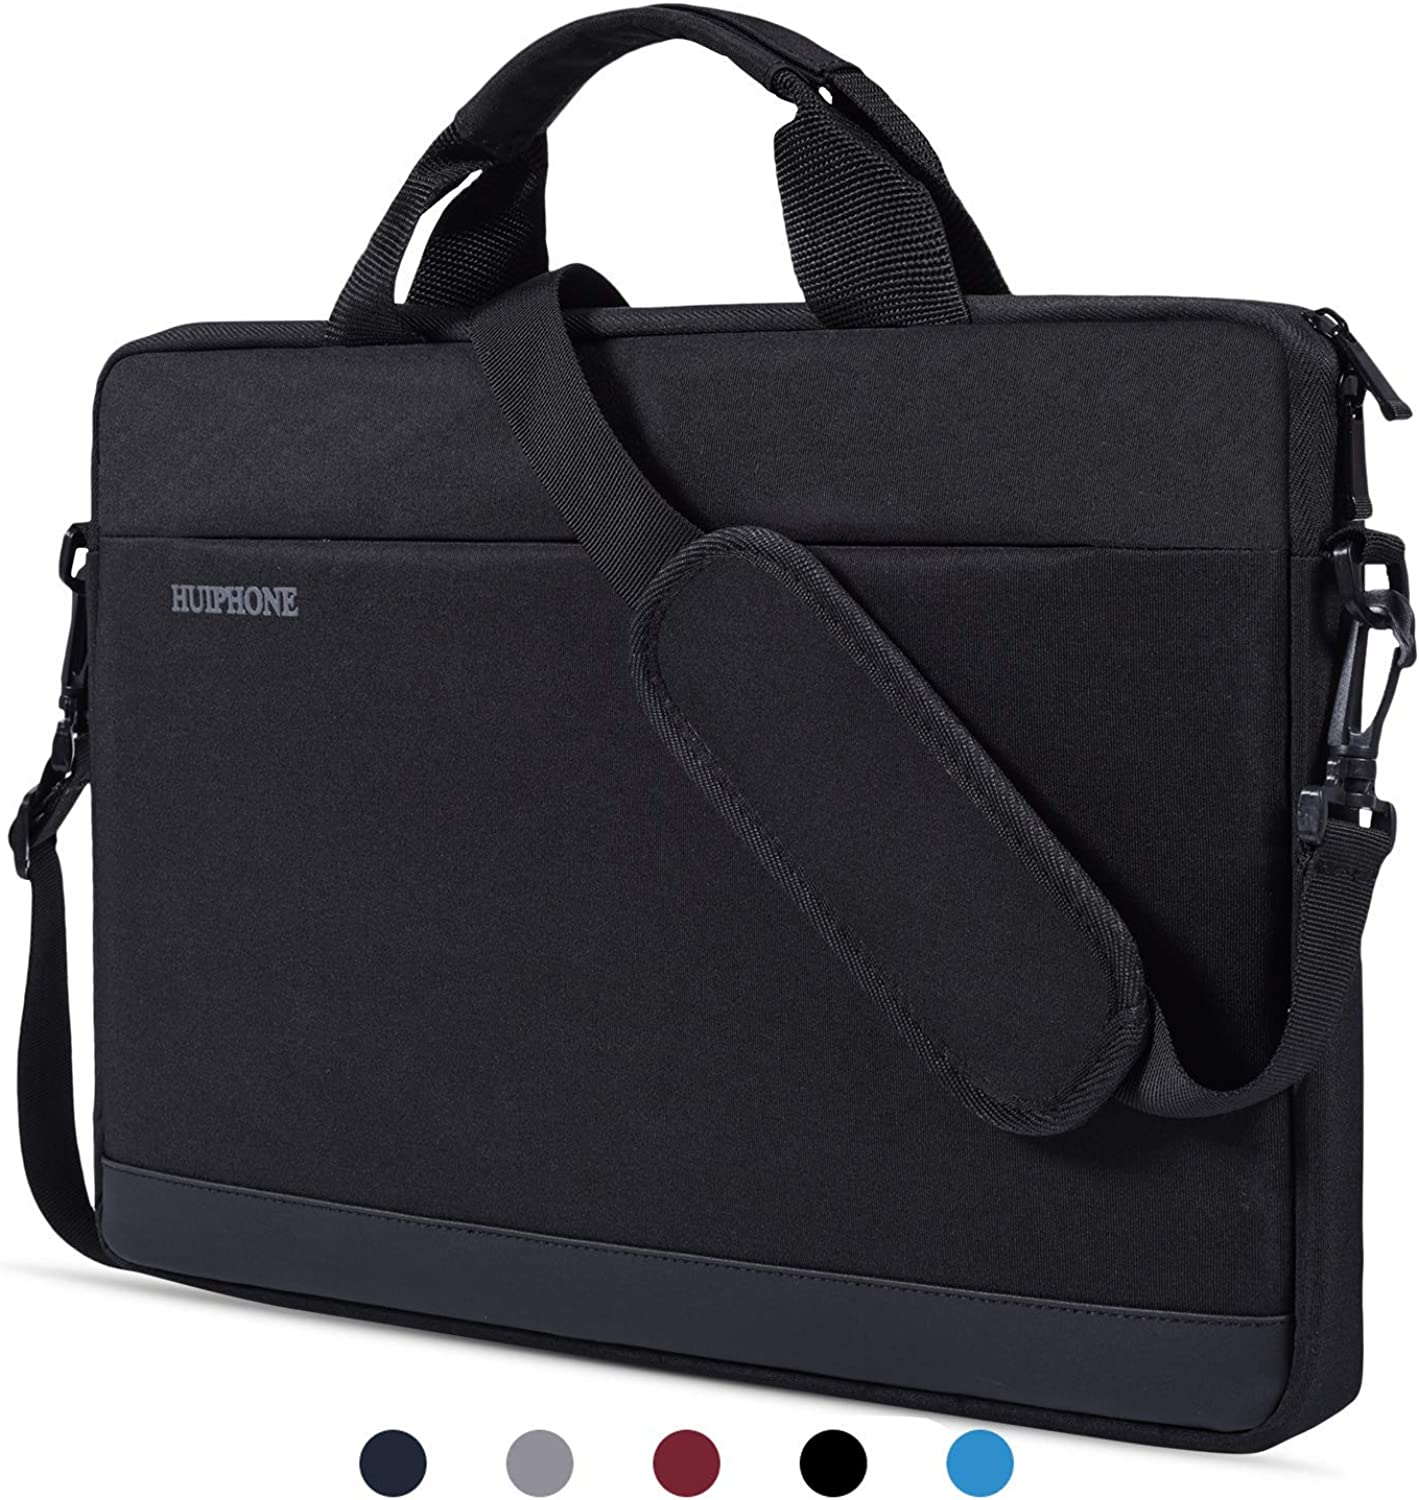 "14-15 Inch Laptop Shoulder Bag Compatible 15 Inch MacBook Pro Touch Bar A1990 A1707 2018 2017 2016,14 Inch ThinkPad Chromebook,Acer Chromebook 14,HP Chromebook 14/Stream 14 and Most 14"" Notebook,Black"